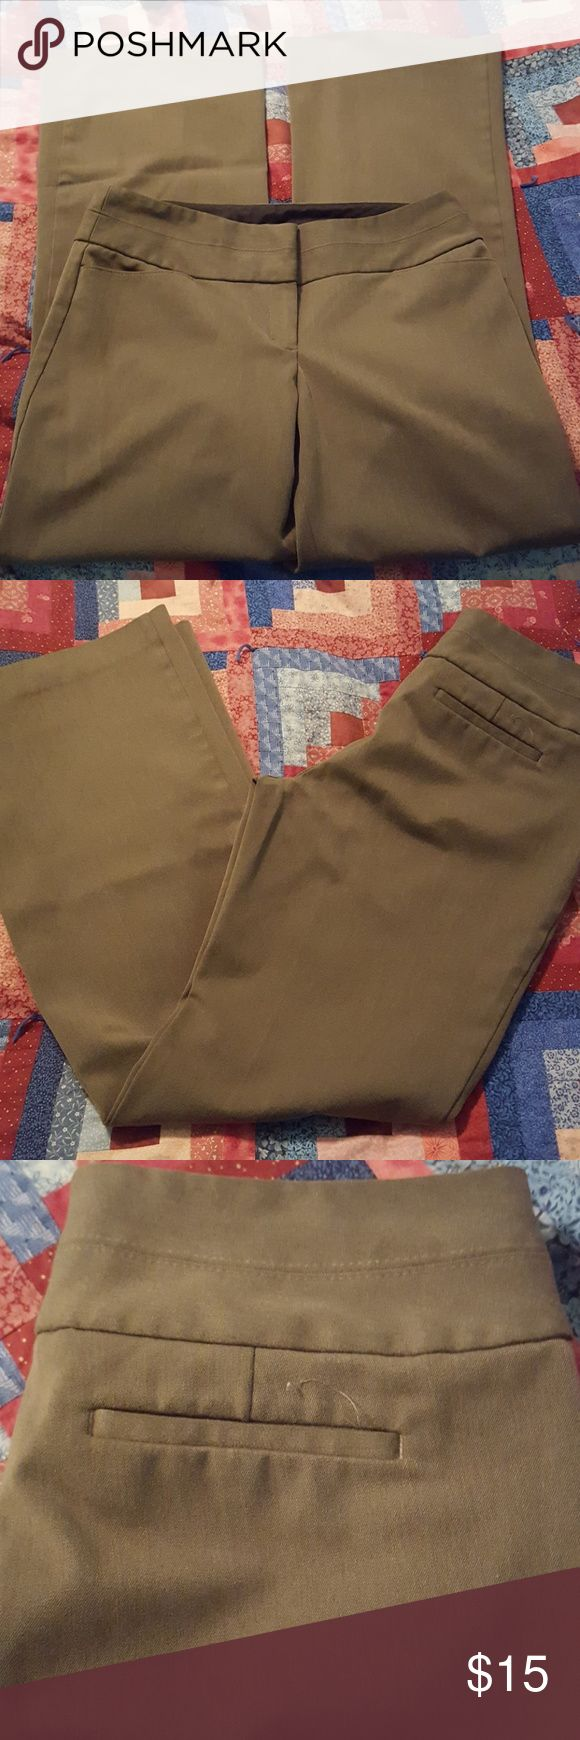 Brown Slacks Brown dress slacks from Express.  In new condition. Express Pants Trousers